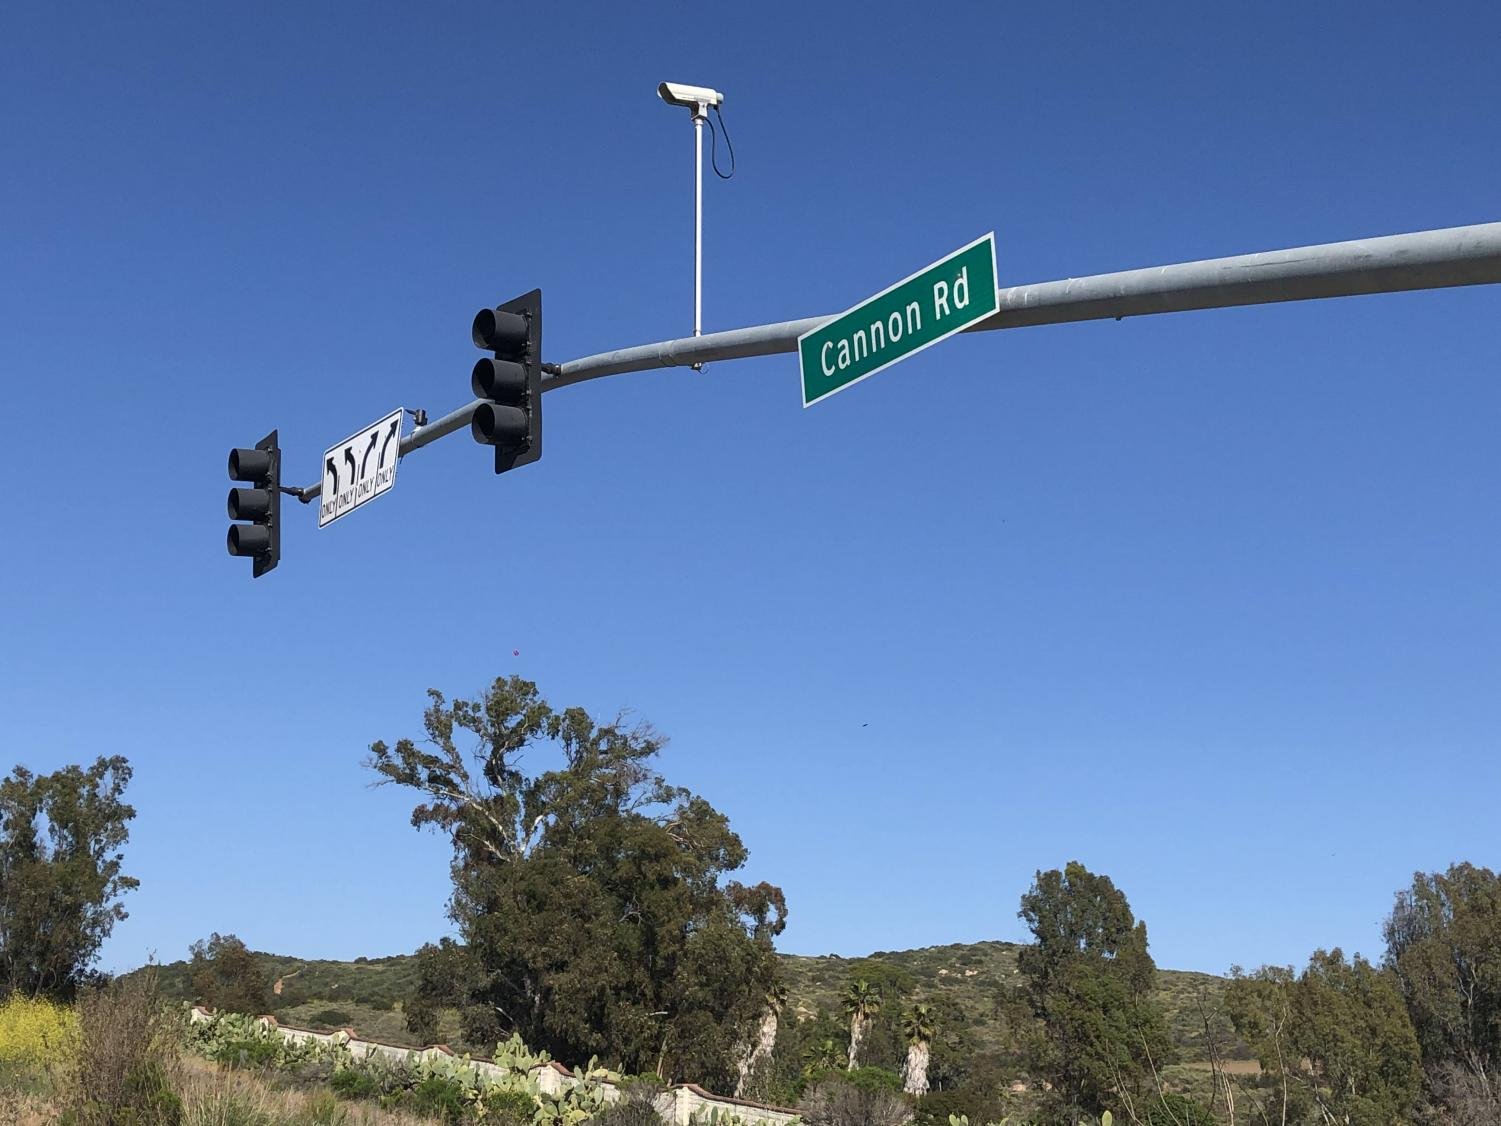 The corner of College and Cannon is passed through by many students and commuters every day. The sign and street name of Cannon Road has been a staple in the Carlsbad transit system for several years.